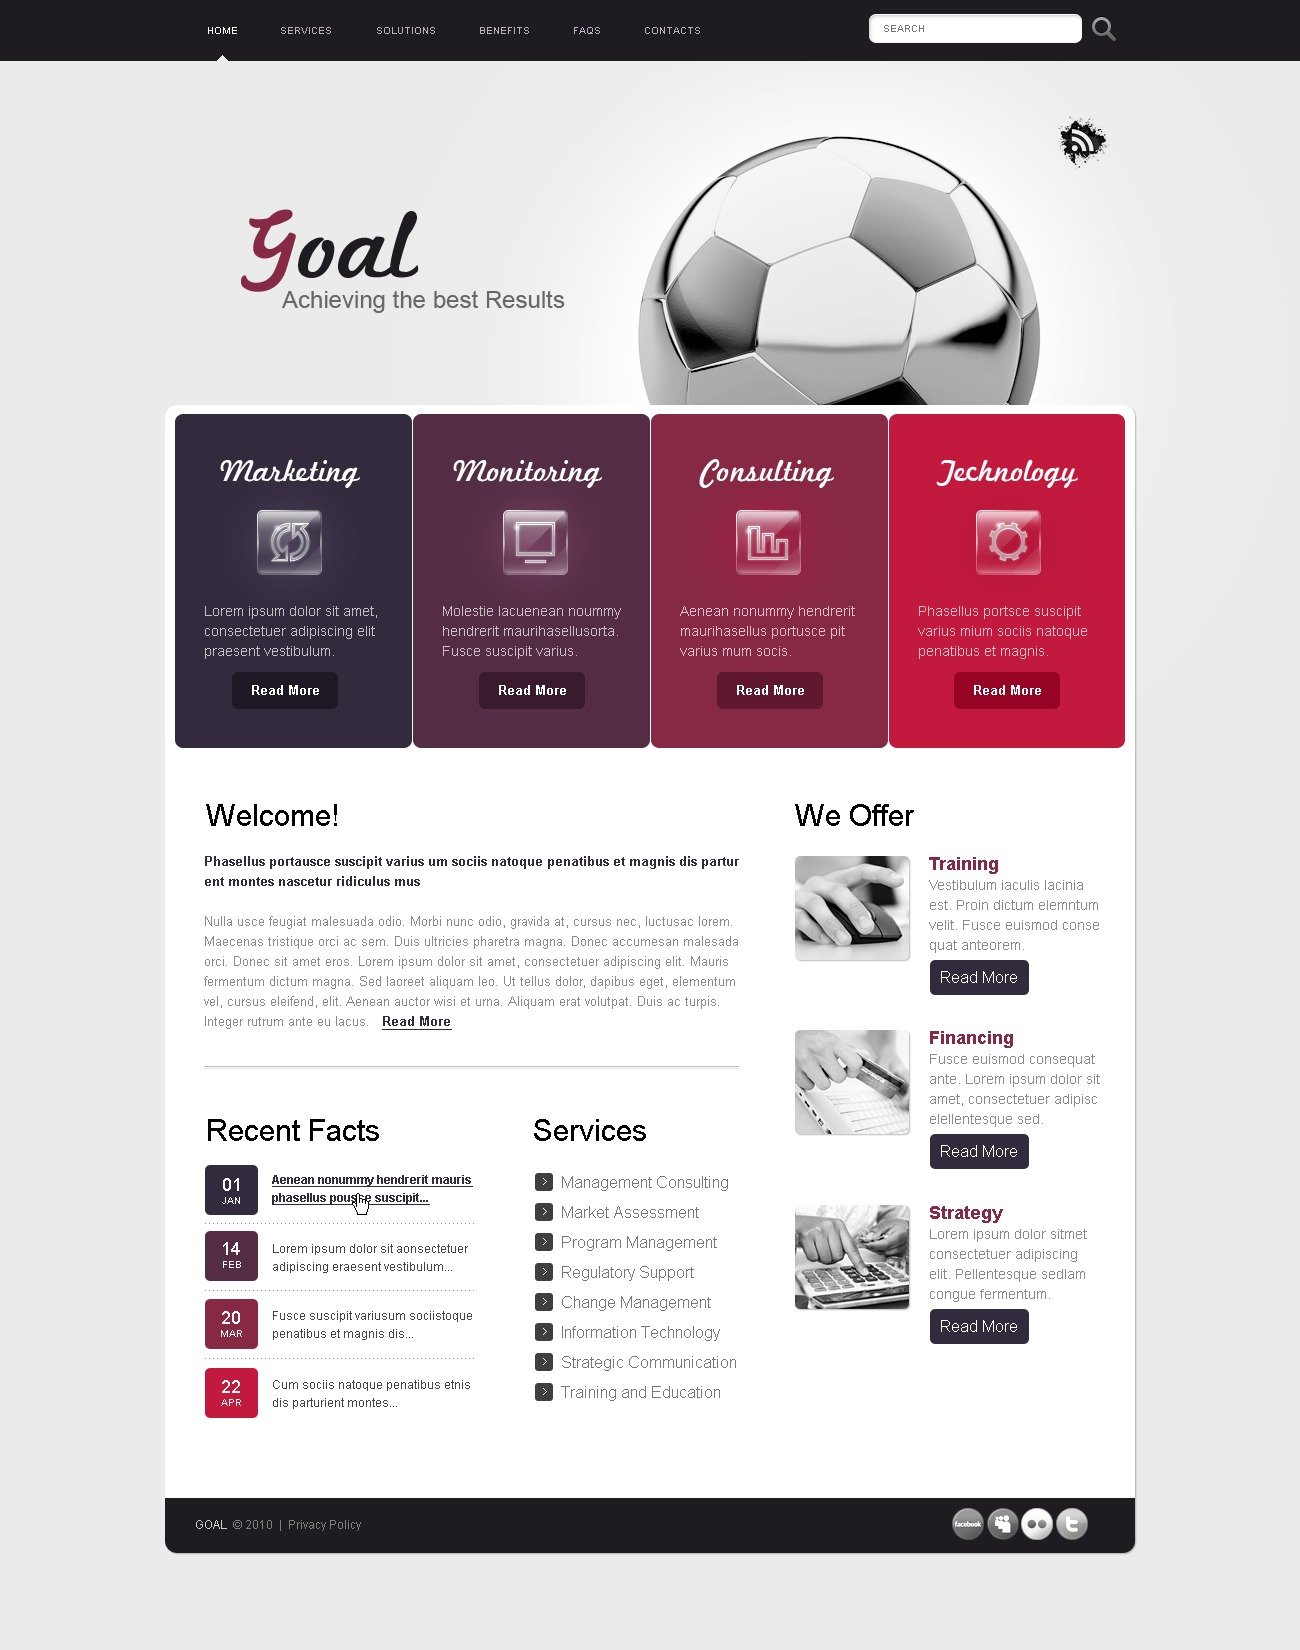 The Goal Business Company PSD Design 54405, one of the best PSD templates of its kind (business, wide), also known as goal business company PSD template, corporate solutions PSD template, innovations PSD template, contacts PSD template, service PSD template, support PSD template, information dealer PSD template, stocks PSD template, team PSD template, success PSD template, money PSD template, marketing PSD template, director PSD template, manager PSD template, analytics PSD template, planning PSD template, limited PSD template, office PSD template, sales and related with goal business company, corporate solutions, innovations, contacts, service, support, information dealer, stocks, team, success, money, marketing, director, manager, analytics, planning, limited, office, sales, etc.